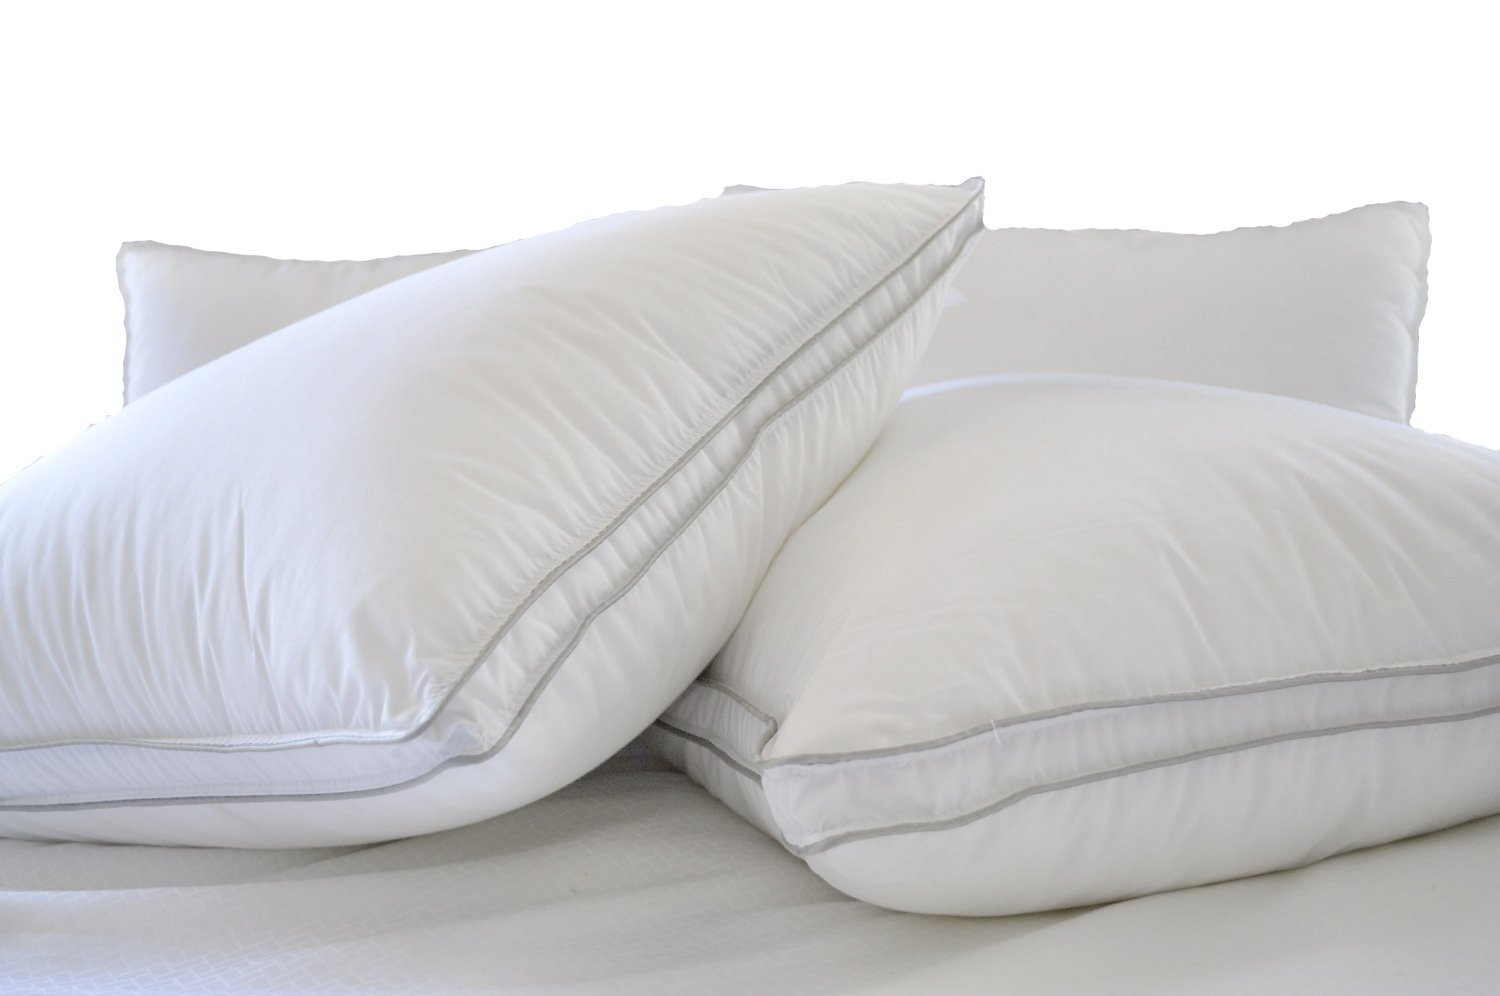 Natural Comfort ALLERGY SHIELDS Luxurious Down Alternative Pillows, 34 oz fill, Set of 2